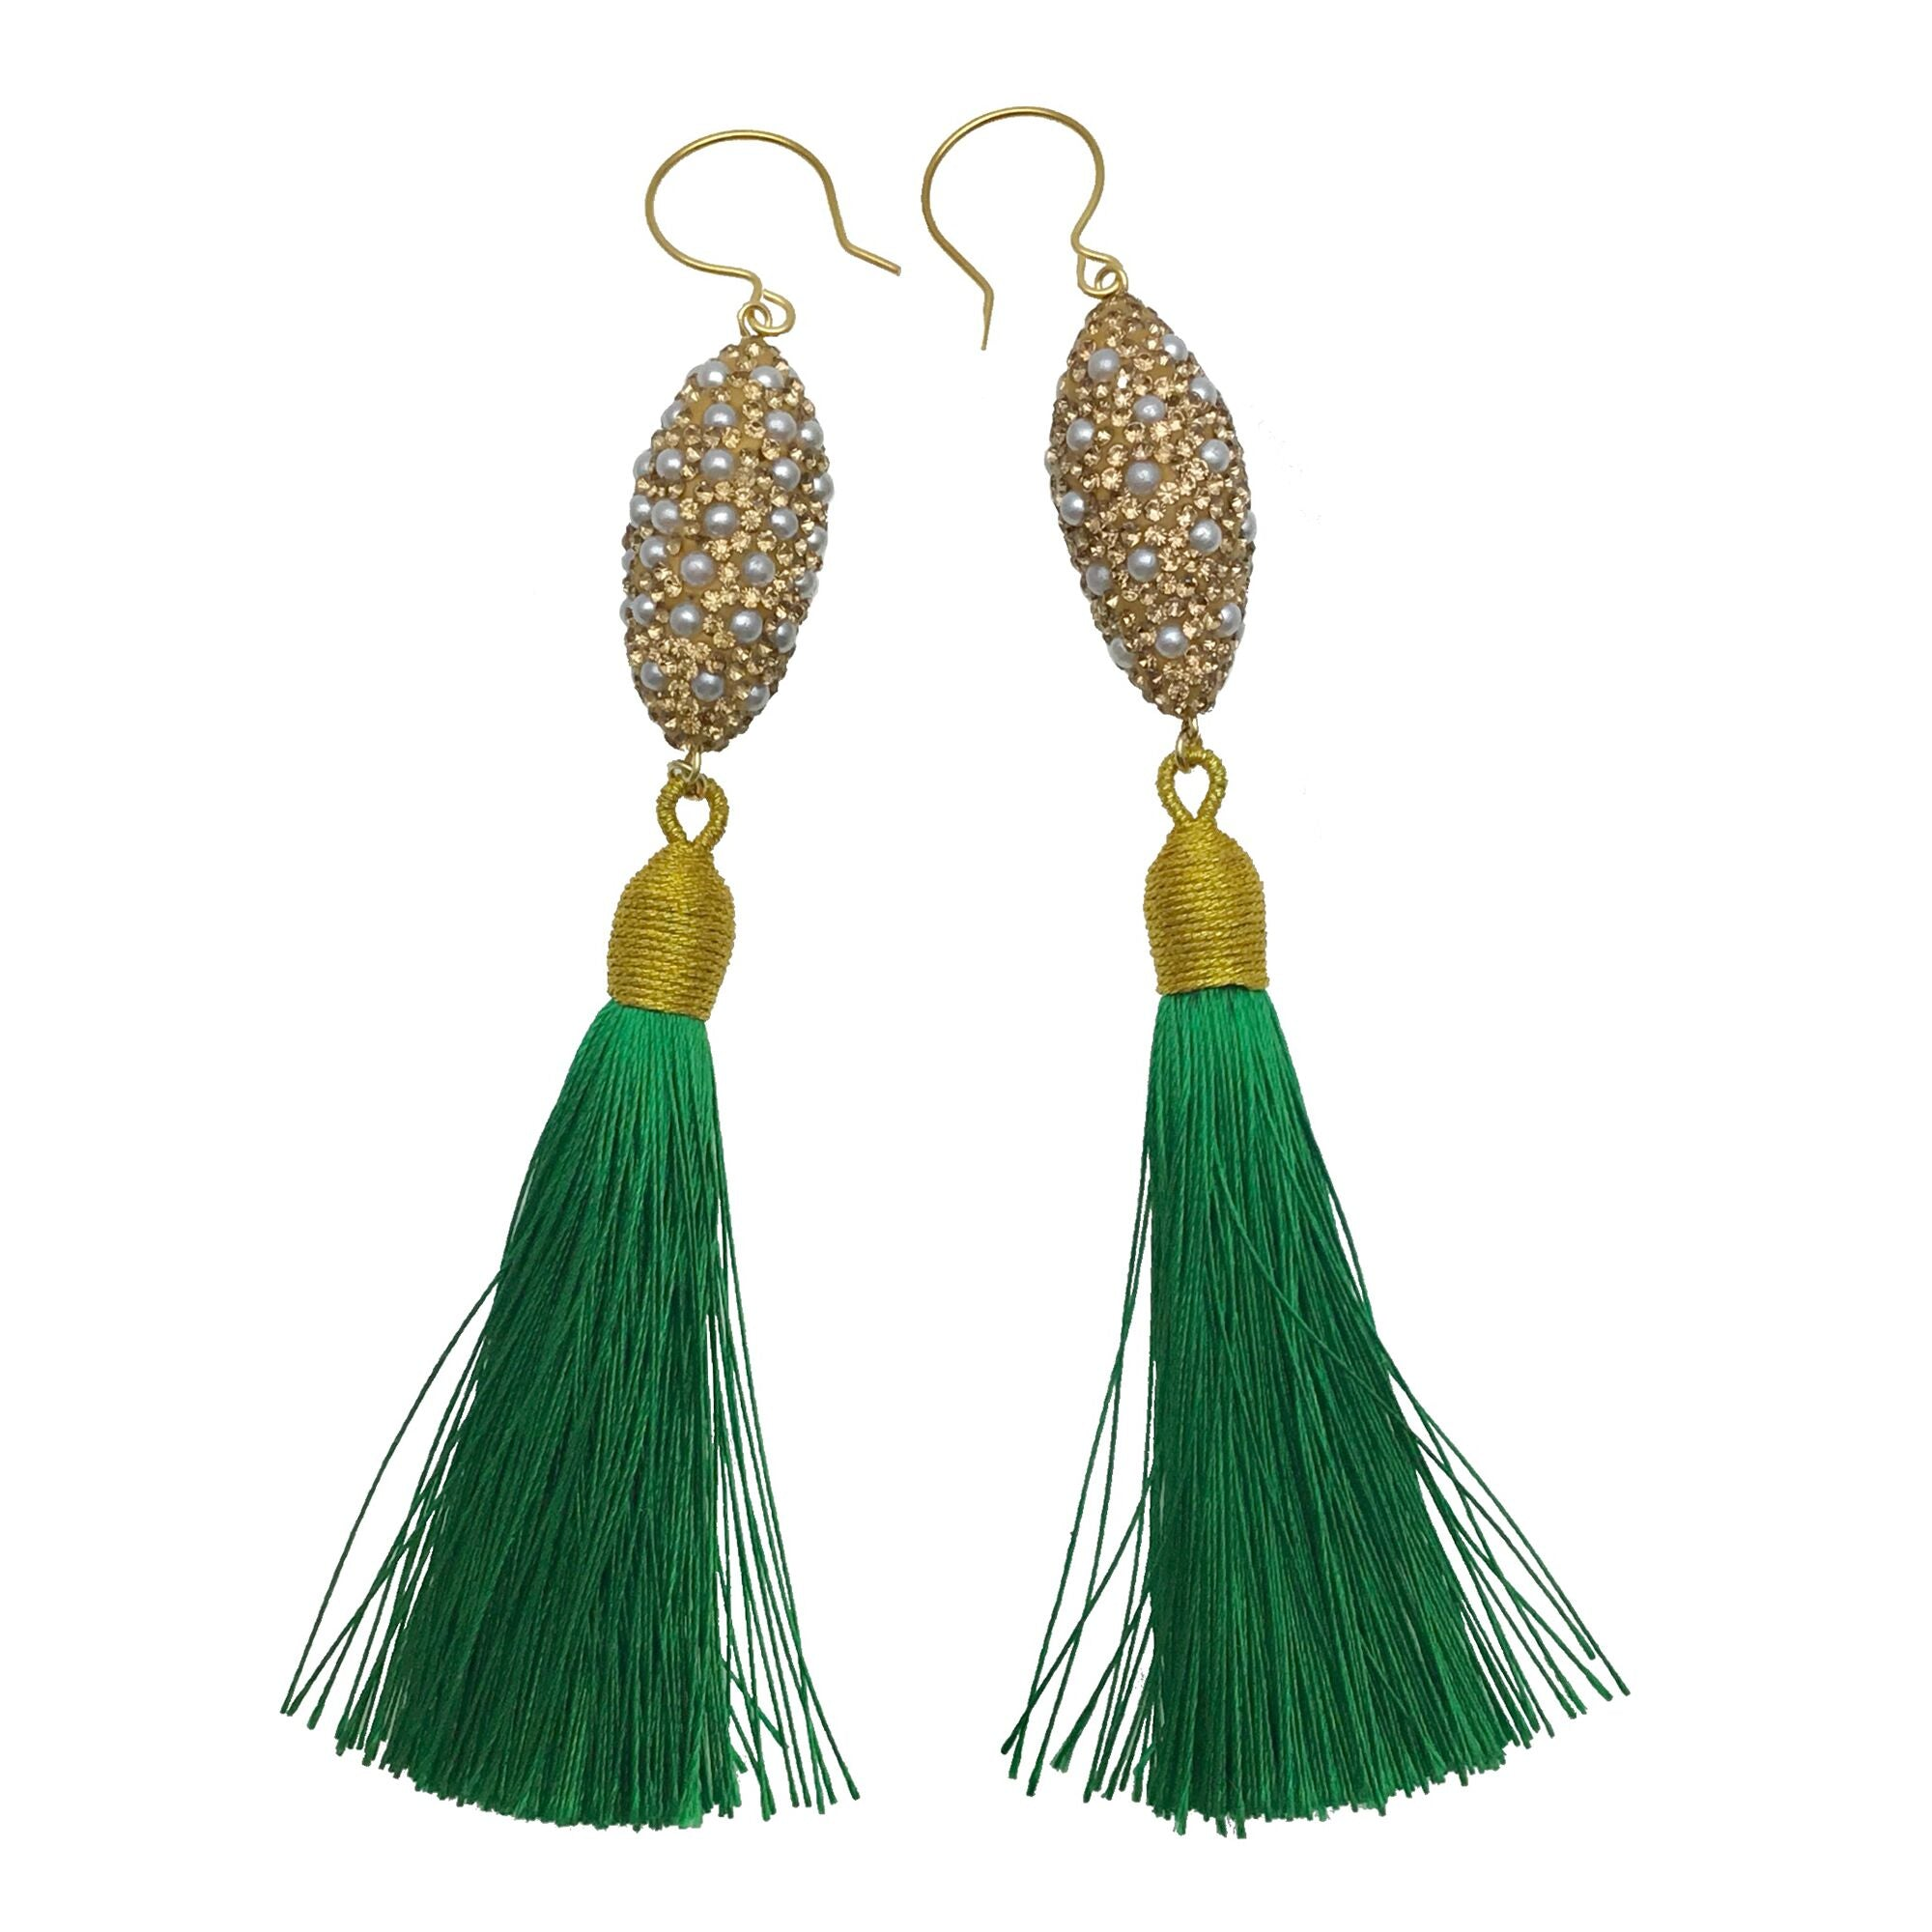 Pearl Inlaid Charm and Green Tassel Earrings - Shopidpearl